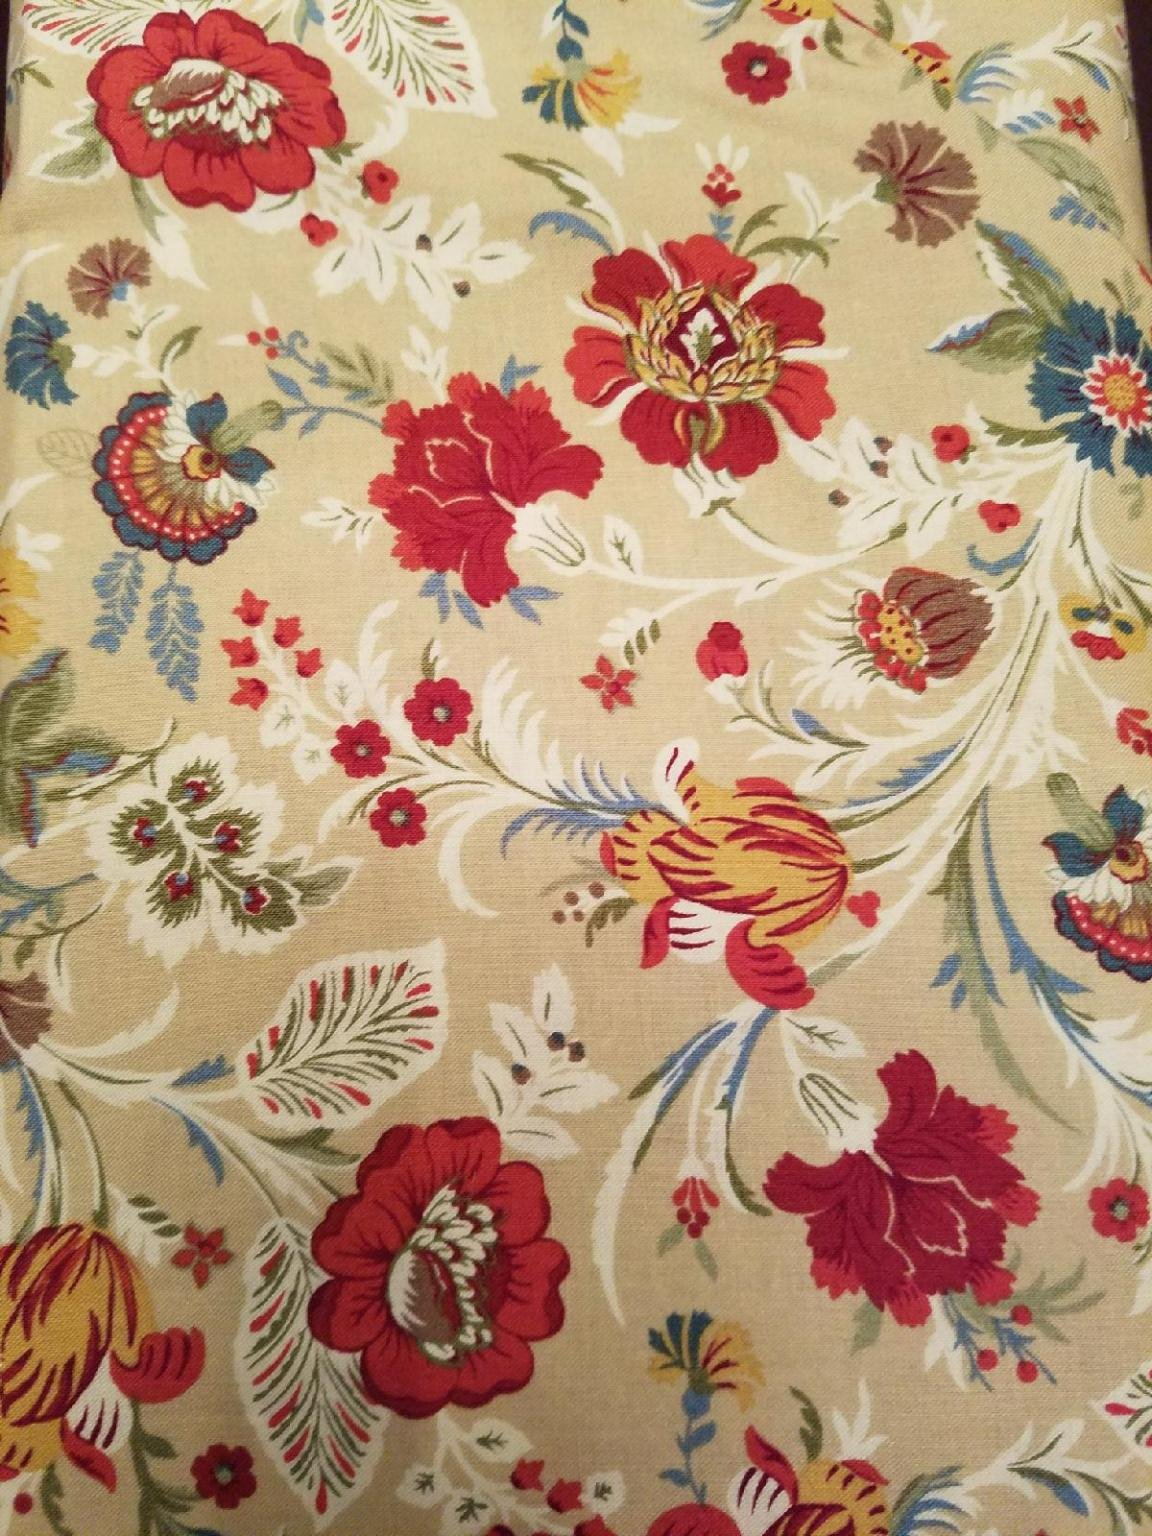 Marcus Fabrics Deco Demure All over Floral on Cream background